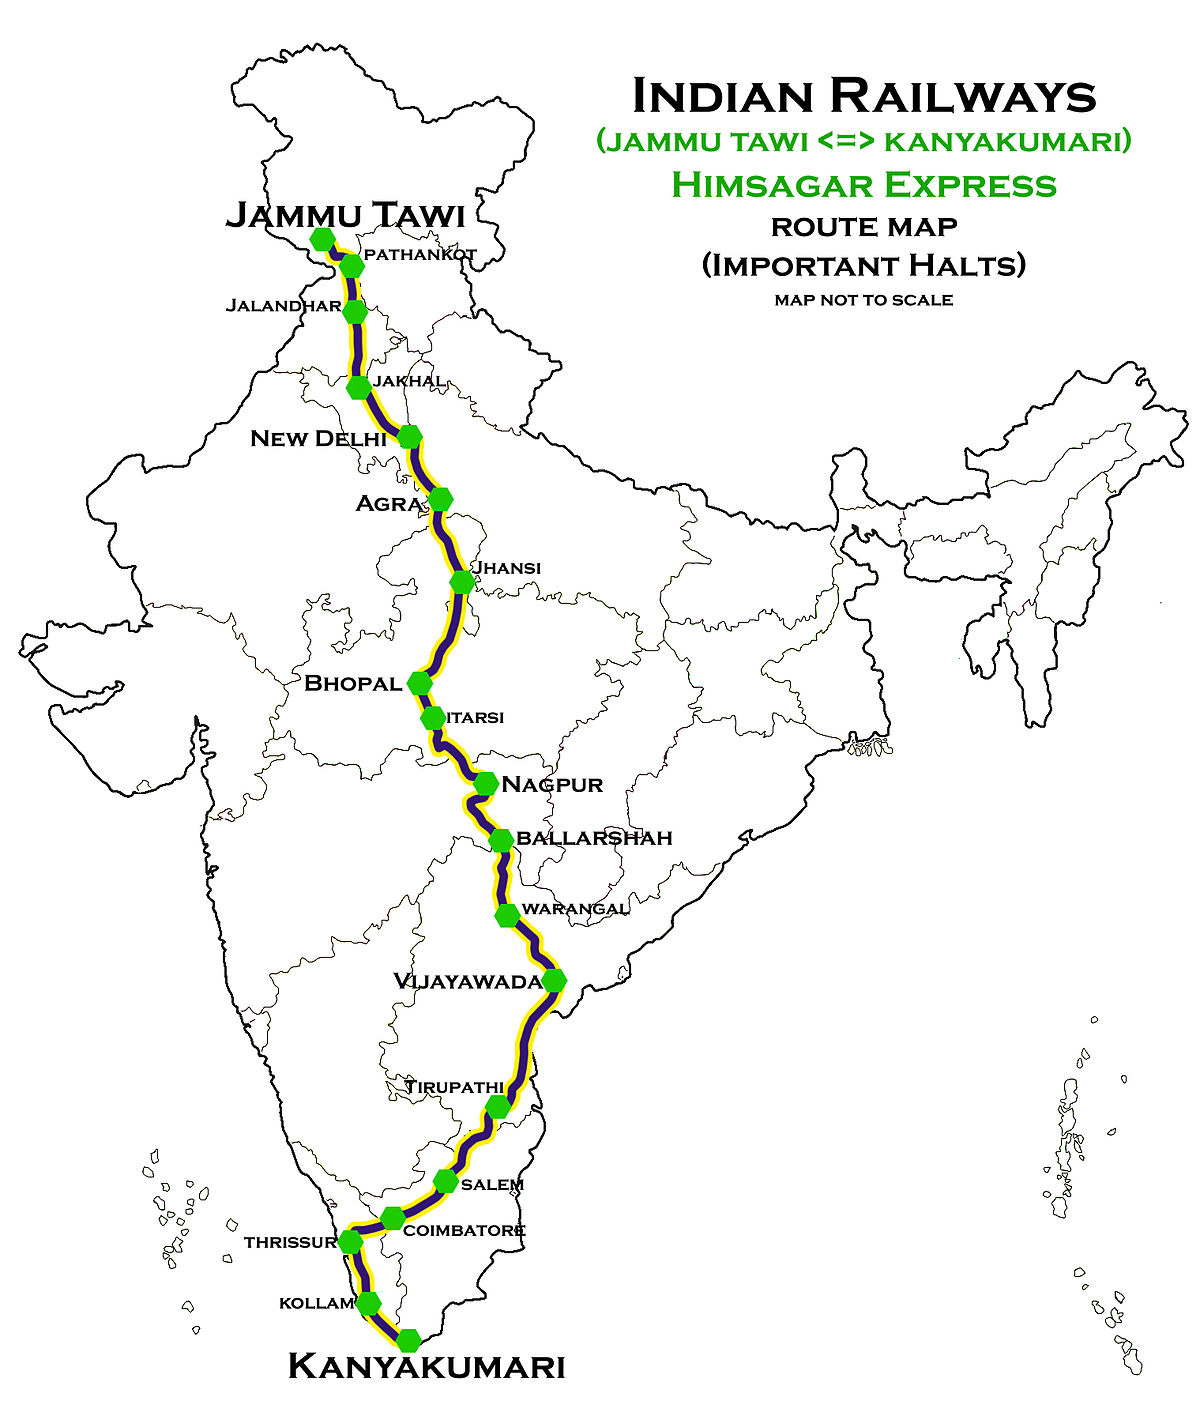 route map of train Himsagar Express Wikipedia route map of train